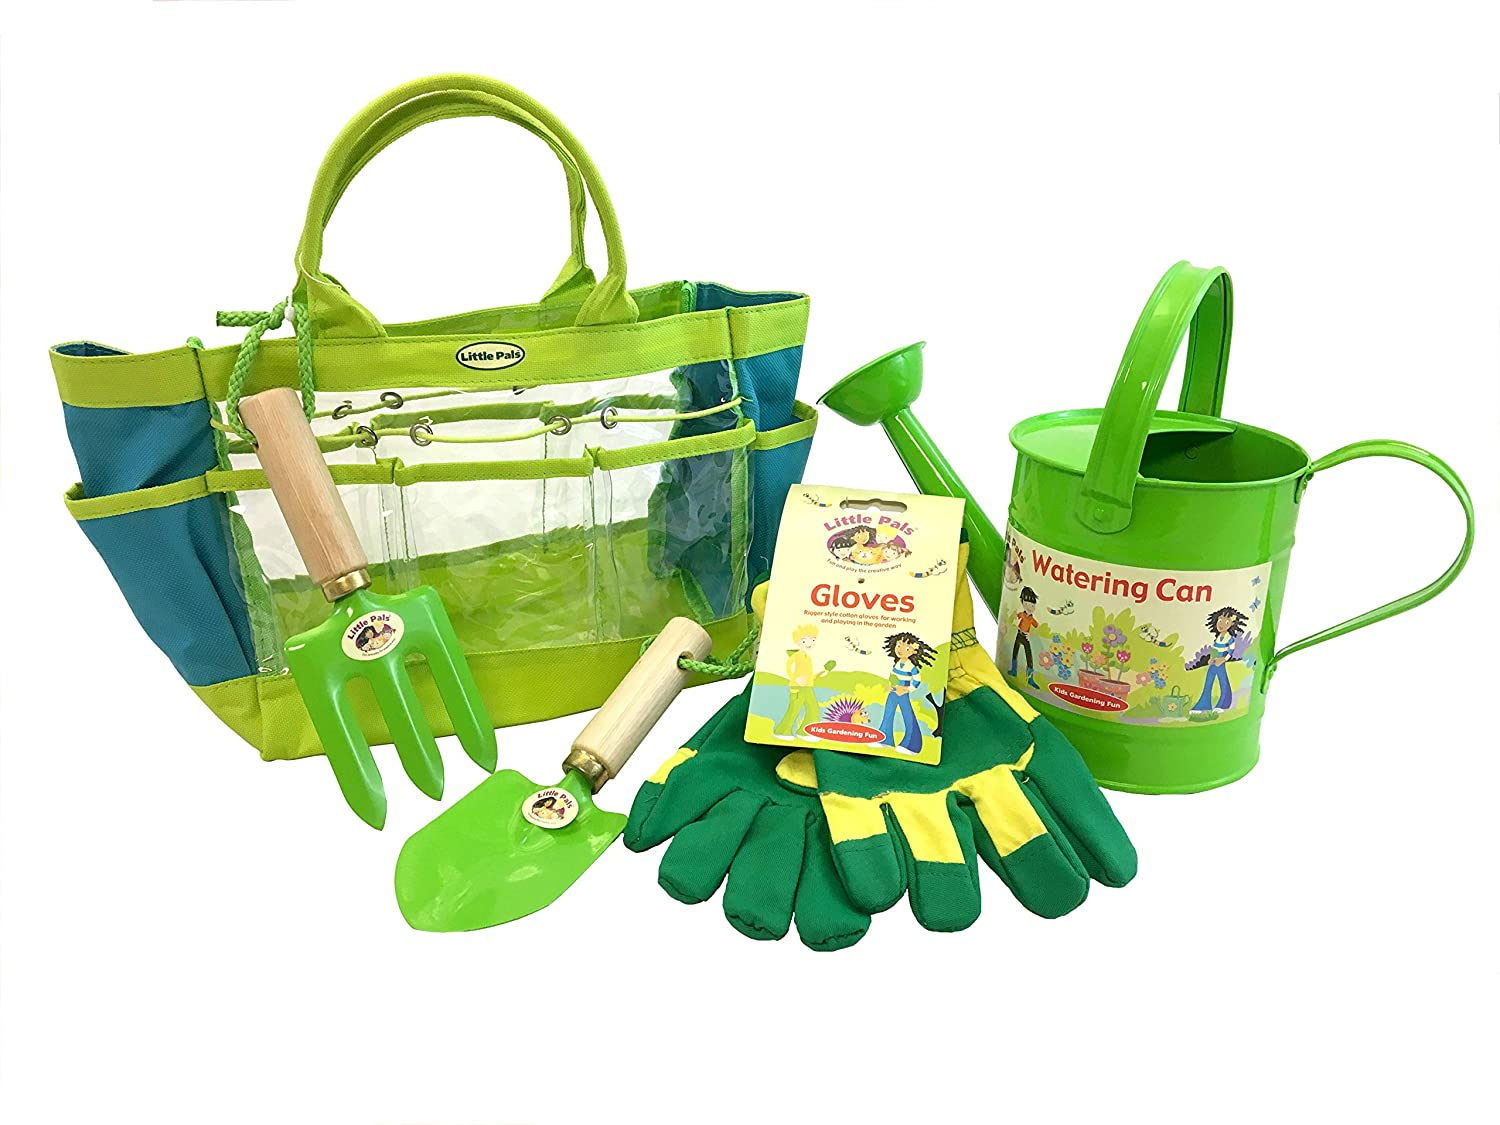 Tierra Garden 7-LP095 Little Pals Kids Garden Kit with Watering Can, Hand Trowel, Hand Fork and Gloves, Green